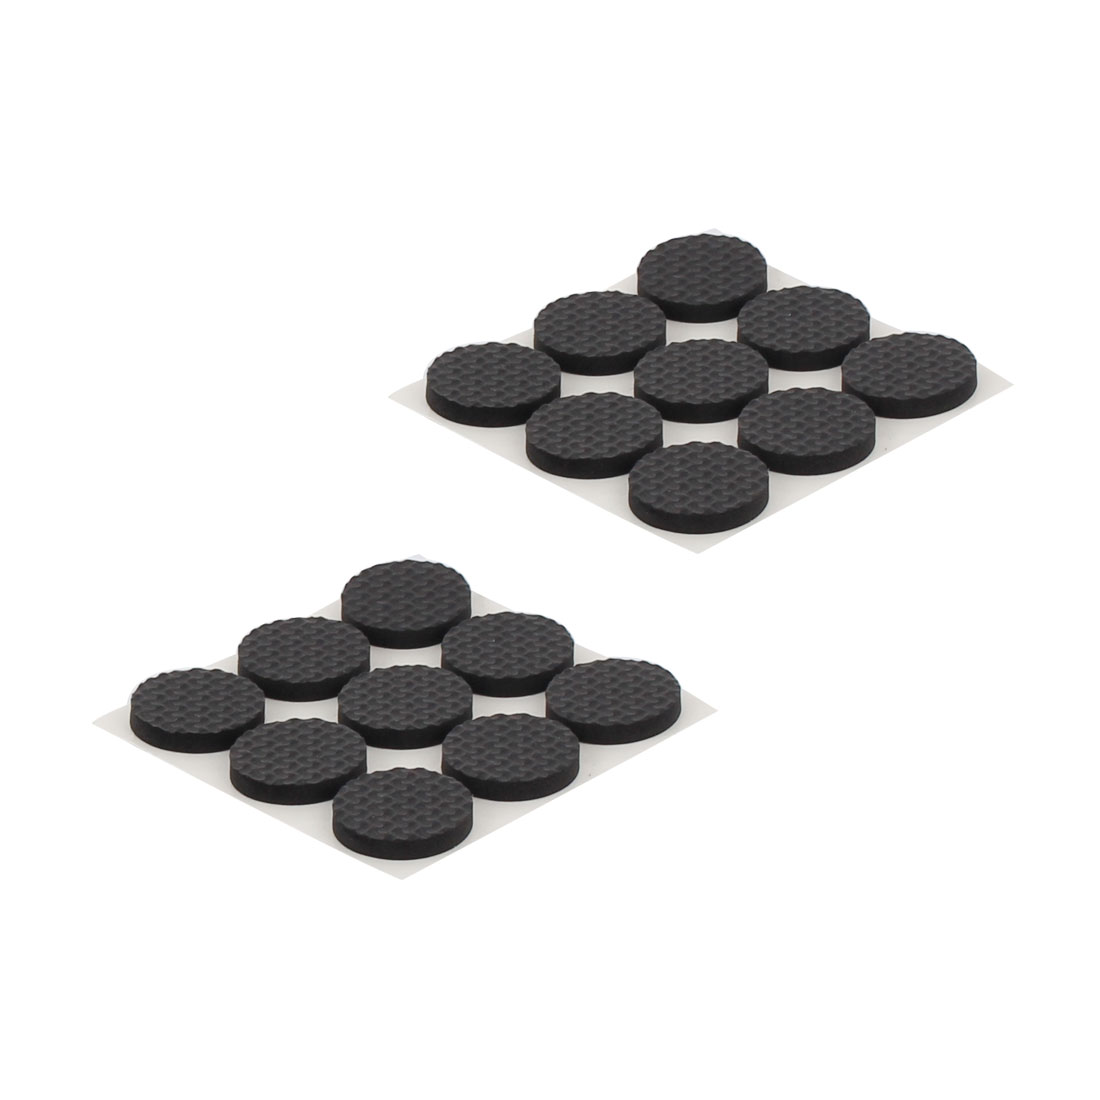 Household Furniture Table Chair Rubber Round Shaped Protection Cushion Pads Black 18pcs